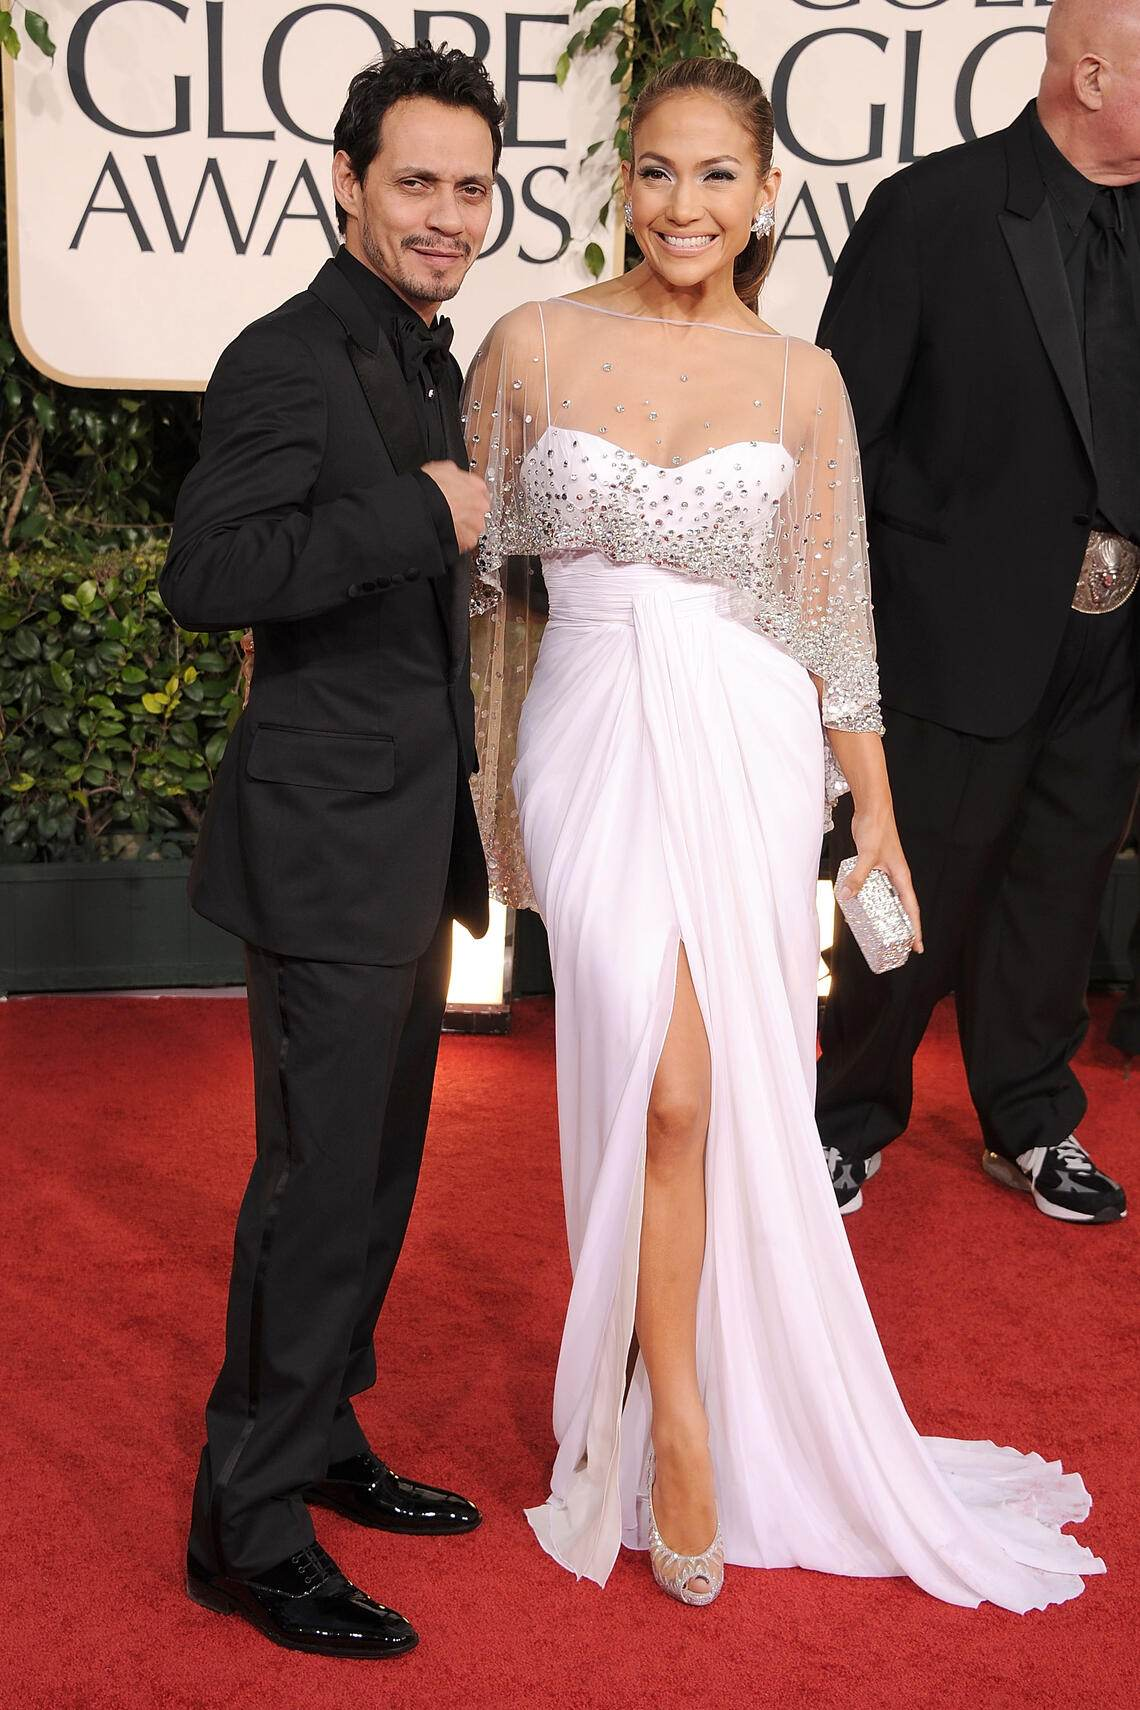 Golden Globes 2011 Roter Teppich Marc Anthony Jennifer Lopez